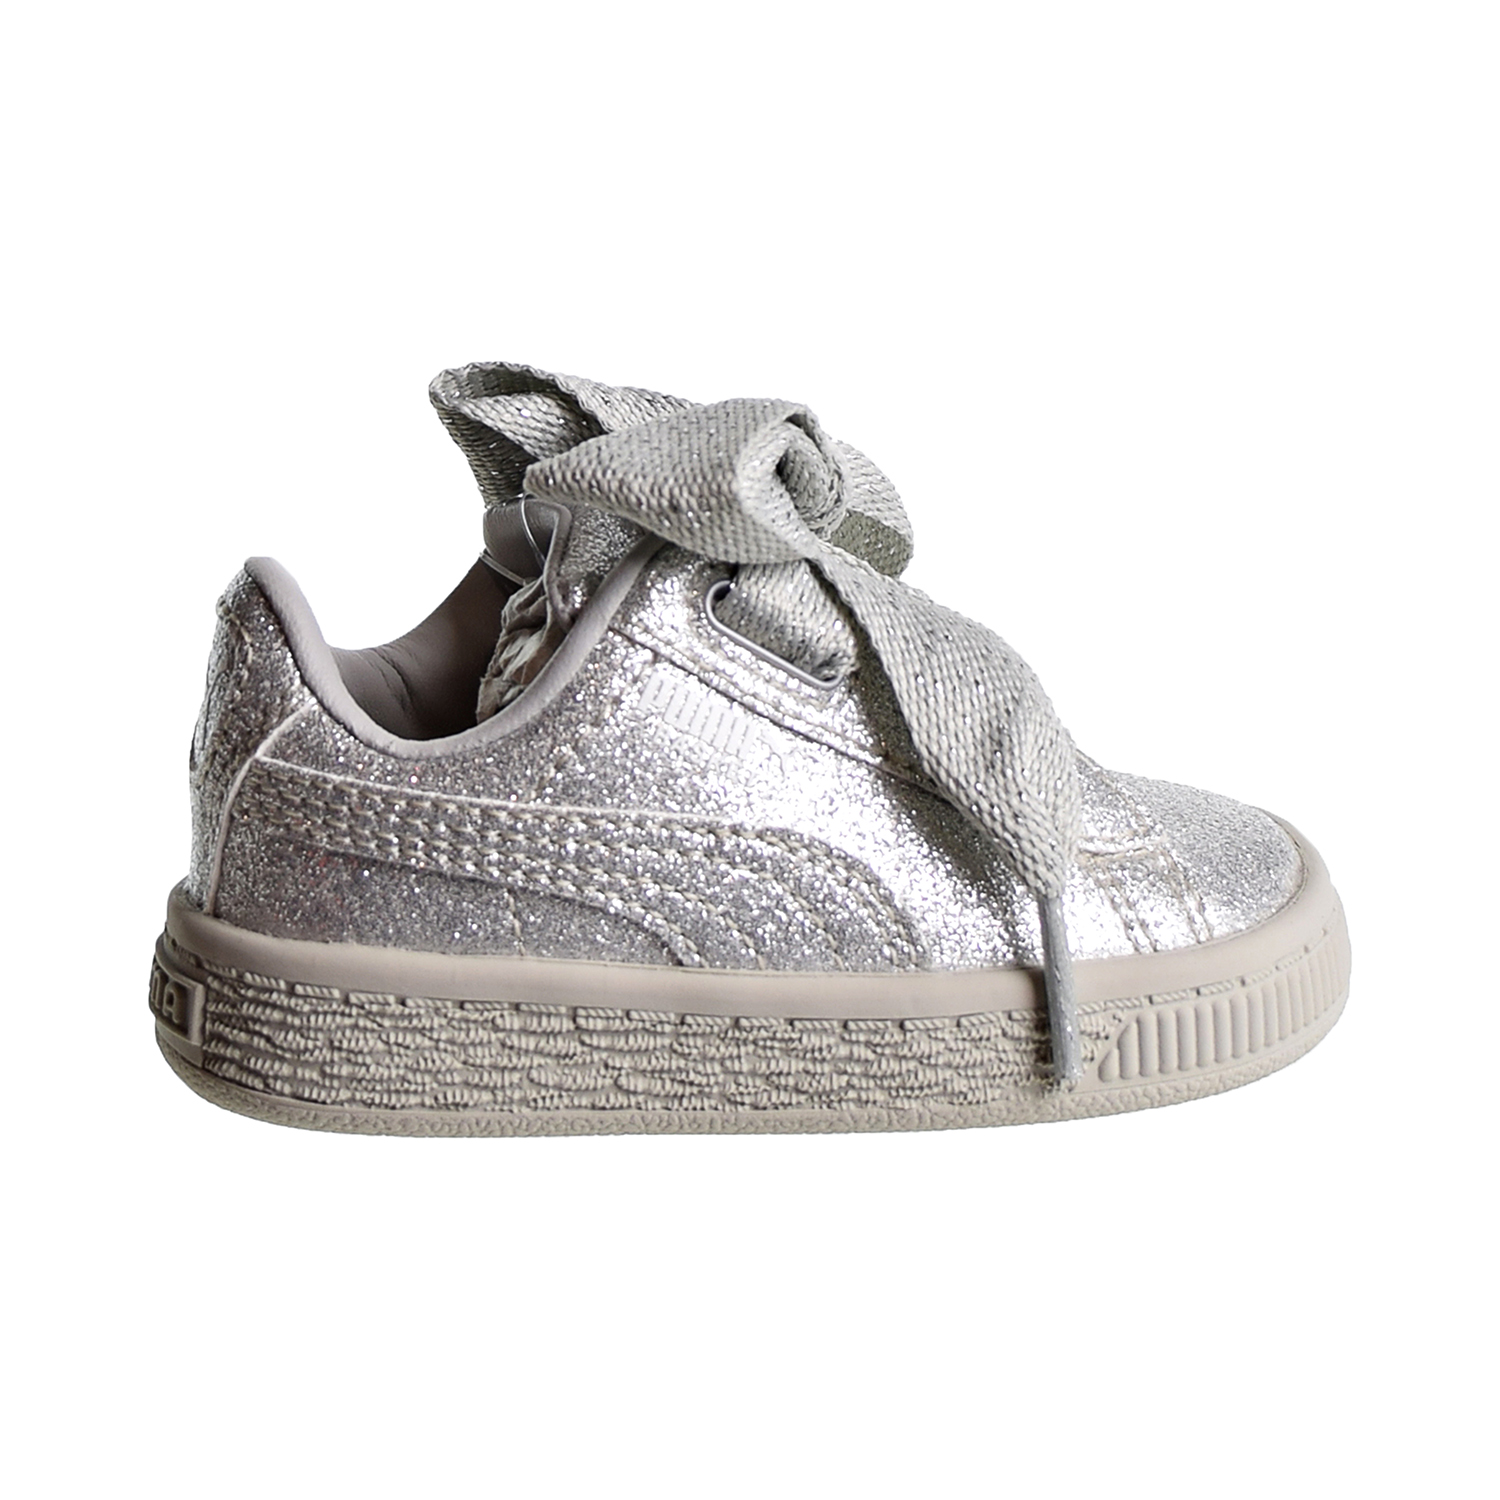 Shoes Silver-Gray-Violet 367632-03